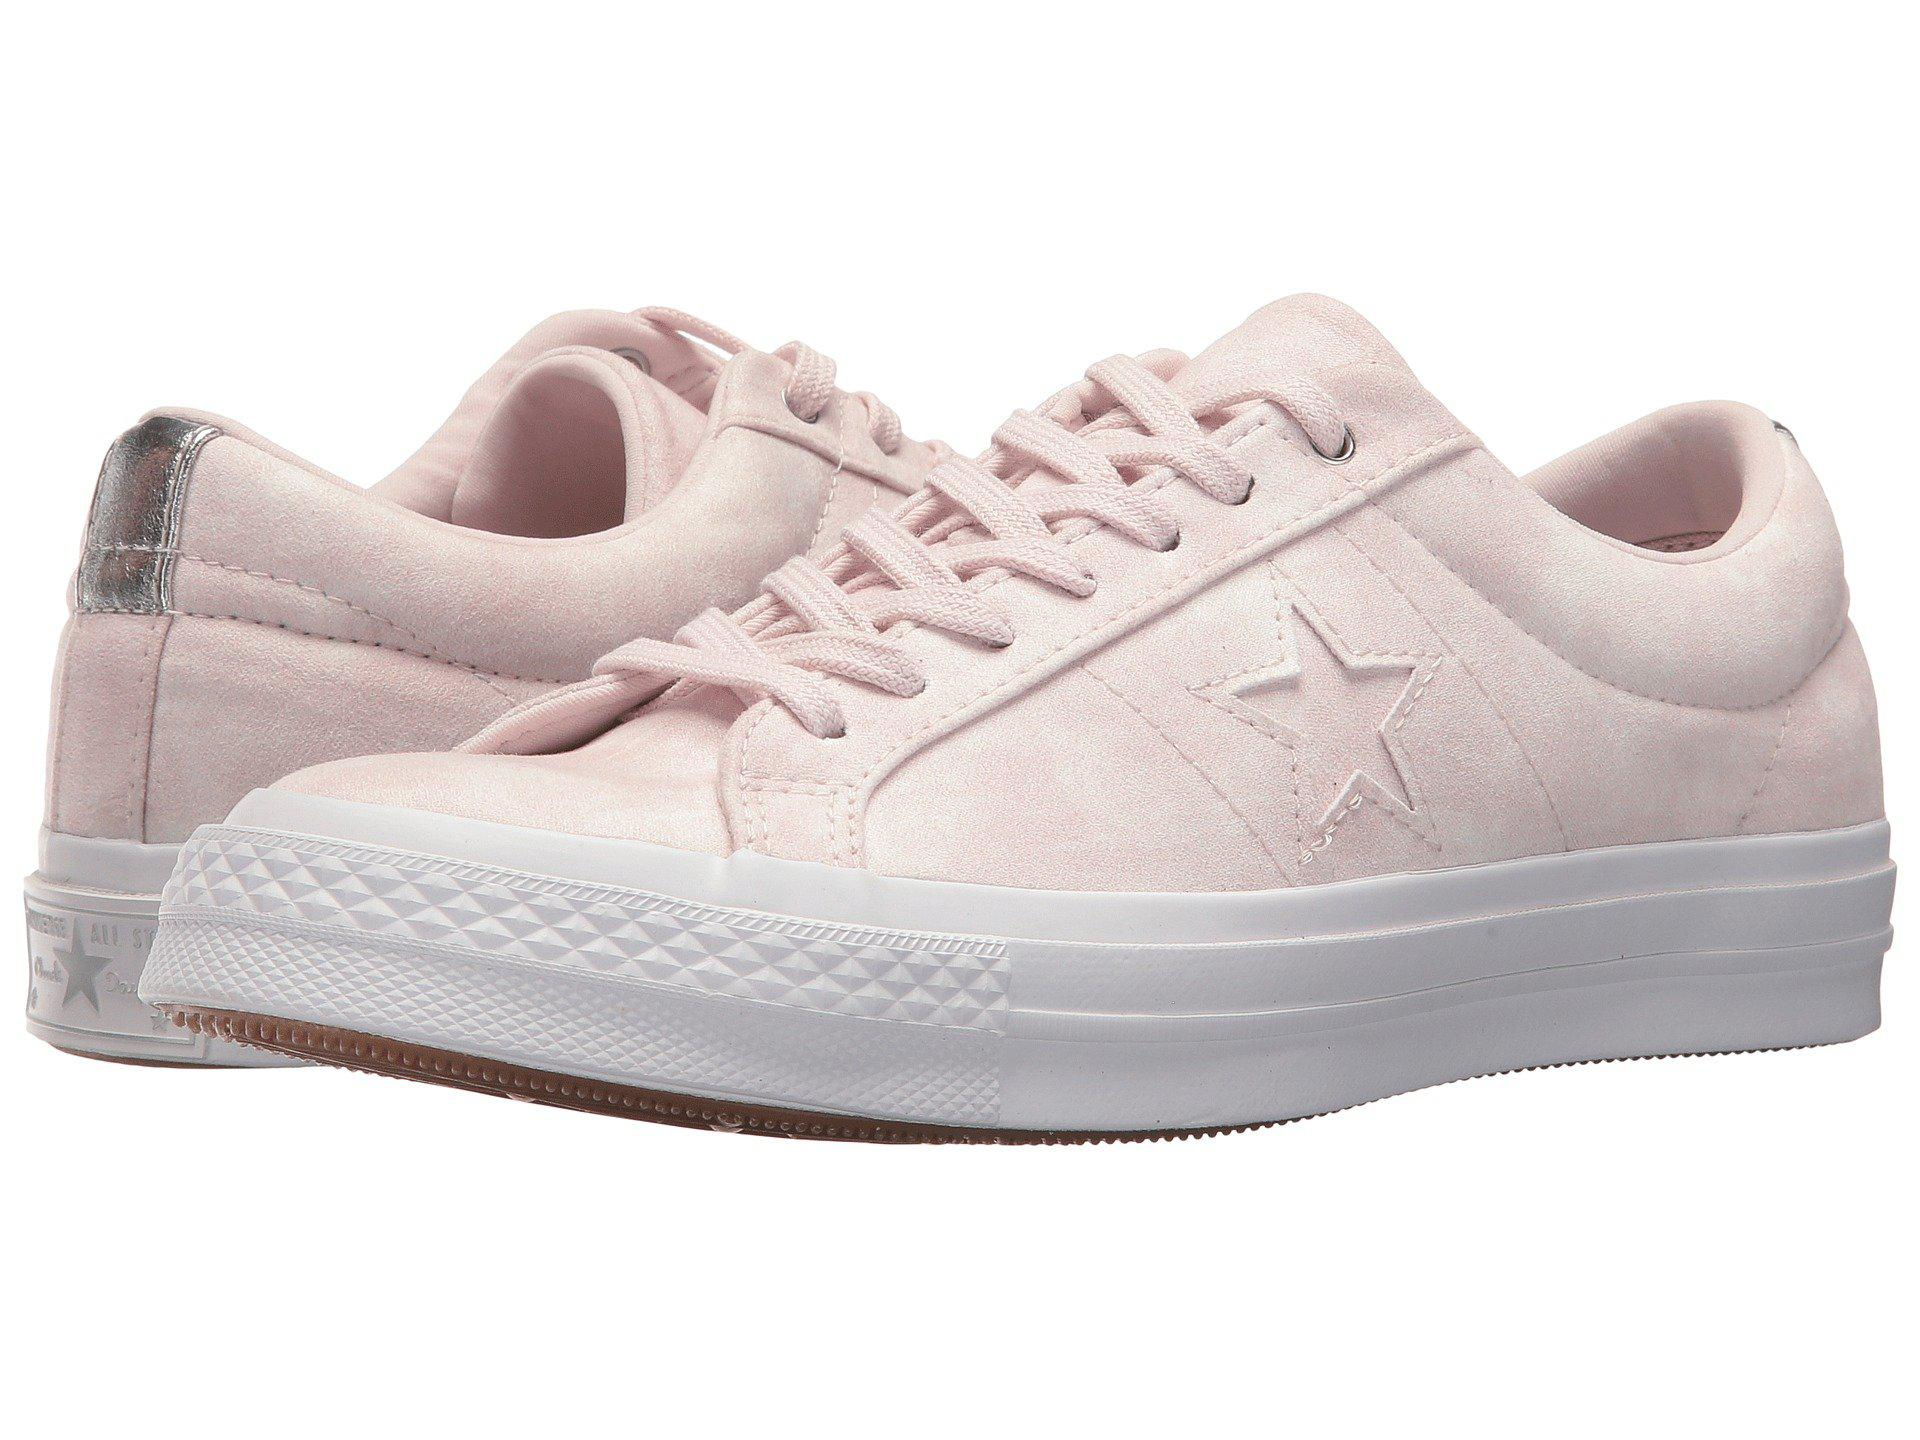 Lyst - Converse One Star® Peached Wash Ox in Pink for Men 2fa3f2a9d